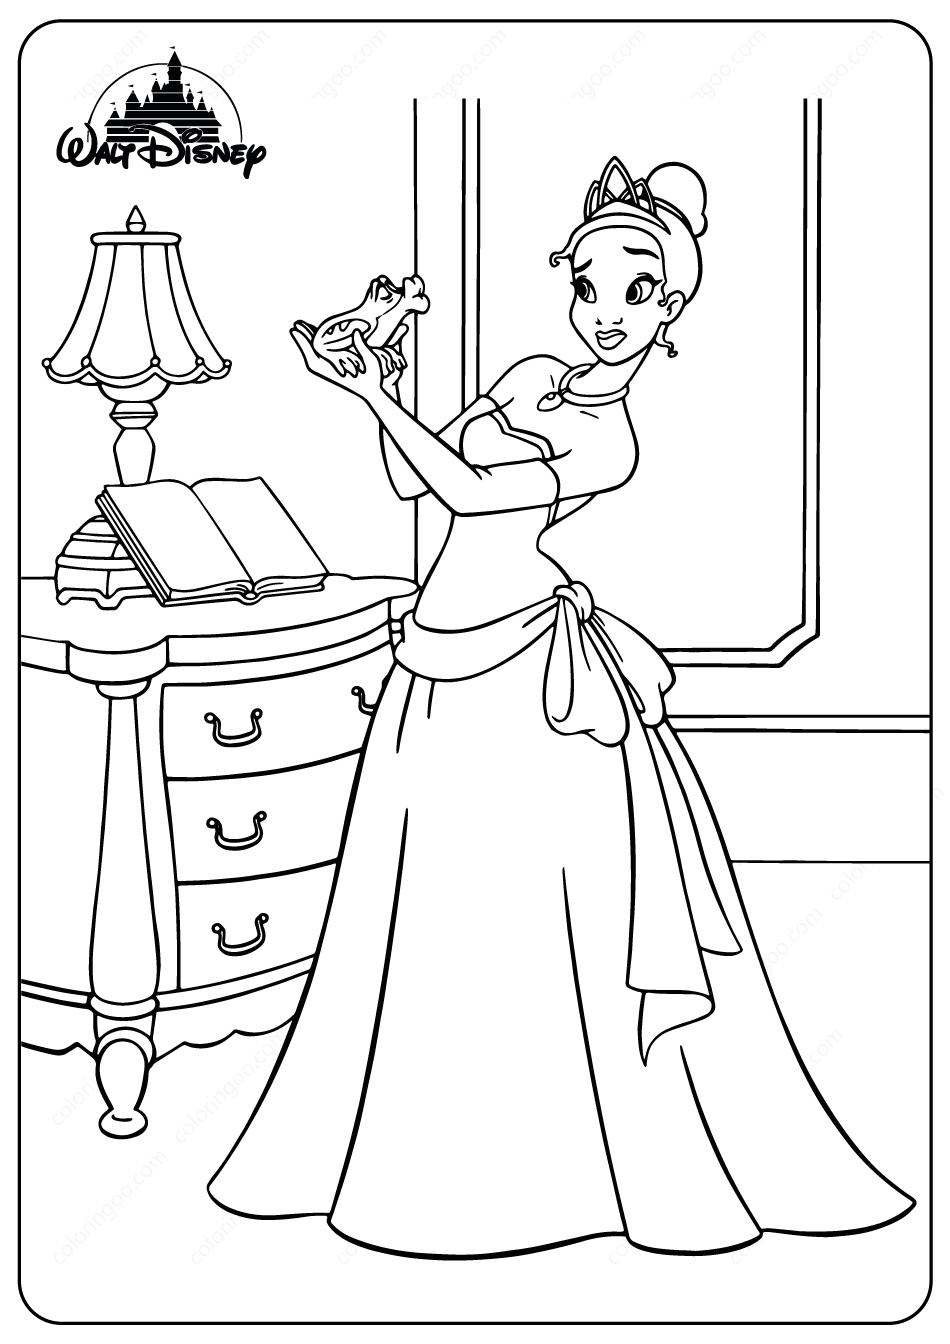 frog and toad coloring sheets top 30 free printable princess and the frog coloring pages and frog sheets toad coloring